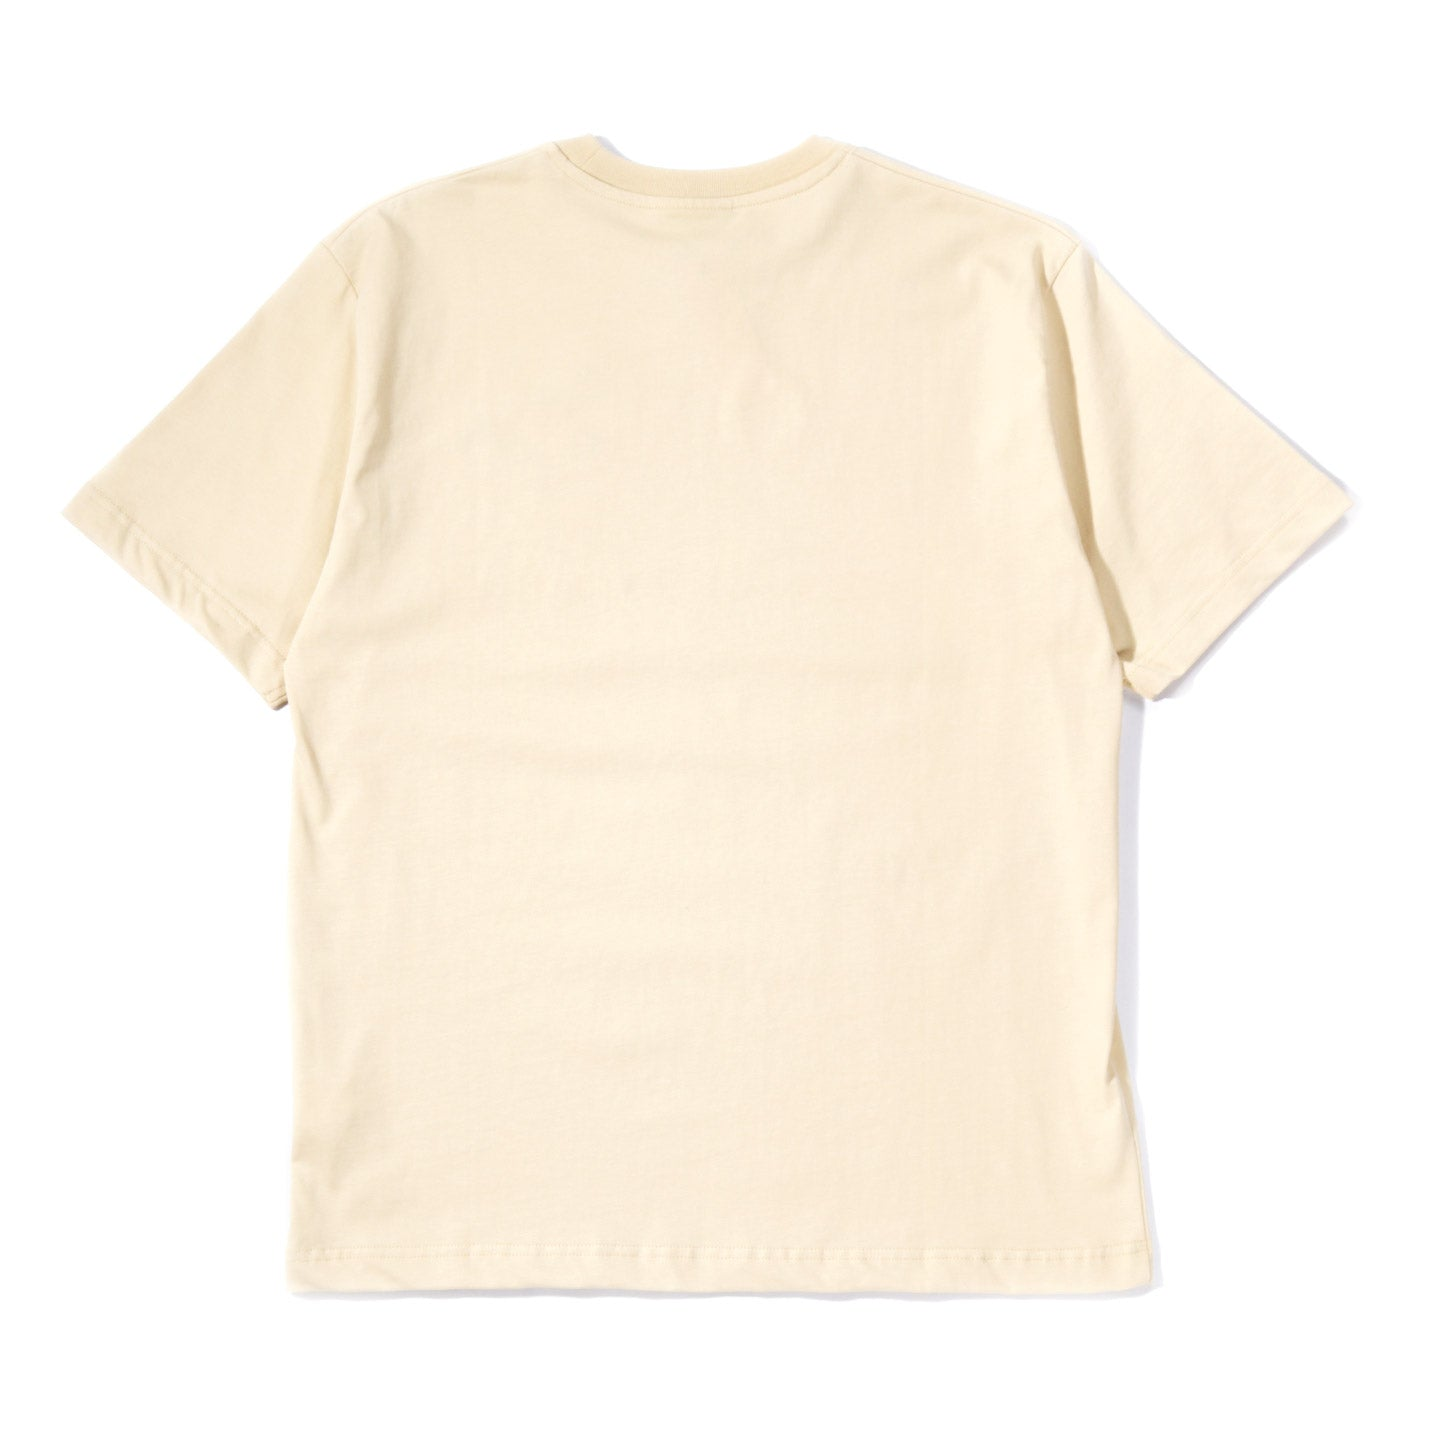 CARNE BOLLENTE MY BARE LADIES T-SHIRT LIGHT YELLOW